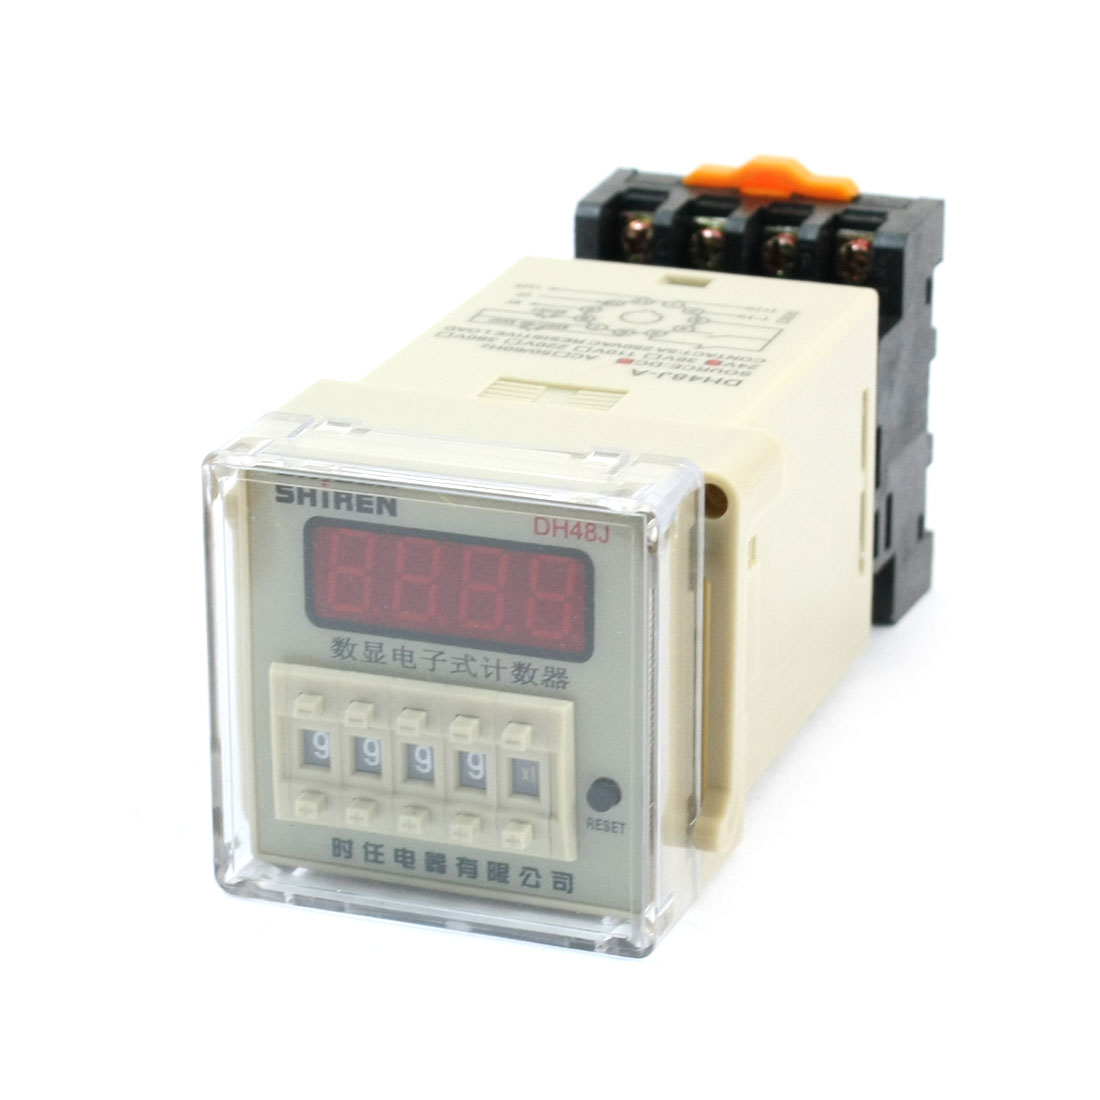 DH48J-A 1-9999 (x1 x10 x100) 30cps Digital Counter Relay DC 24V w Base Socket